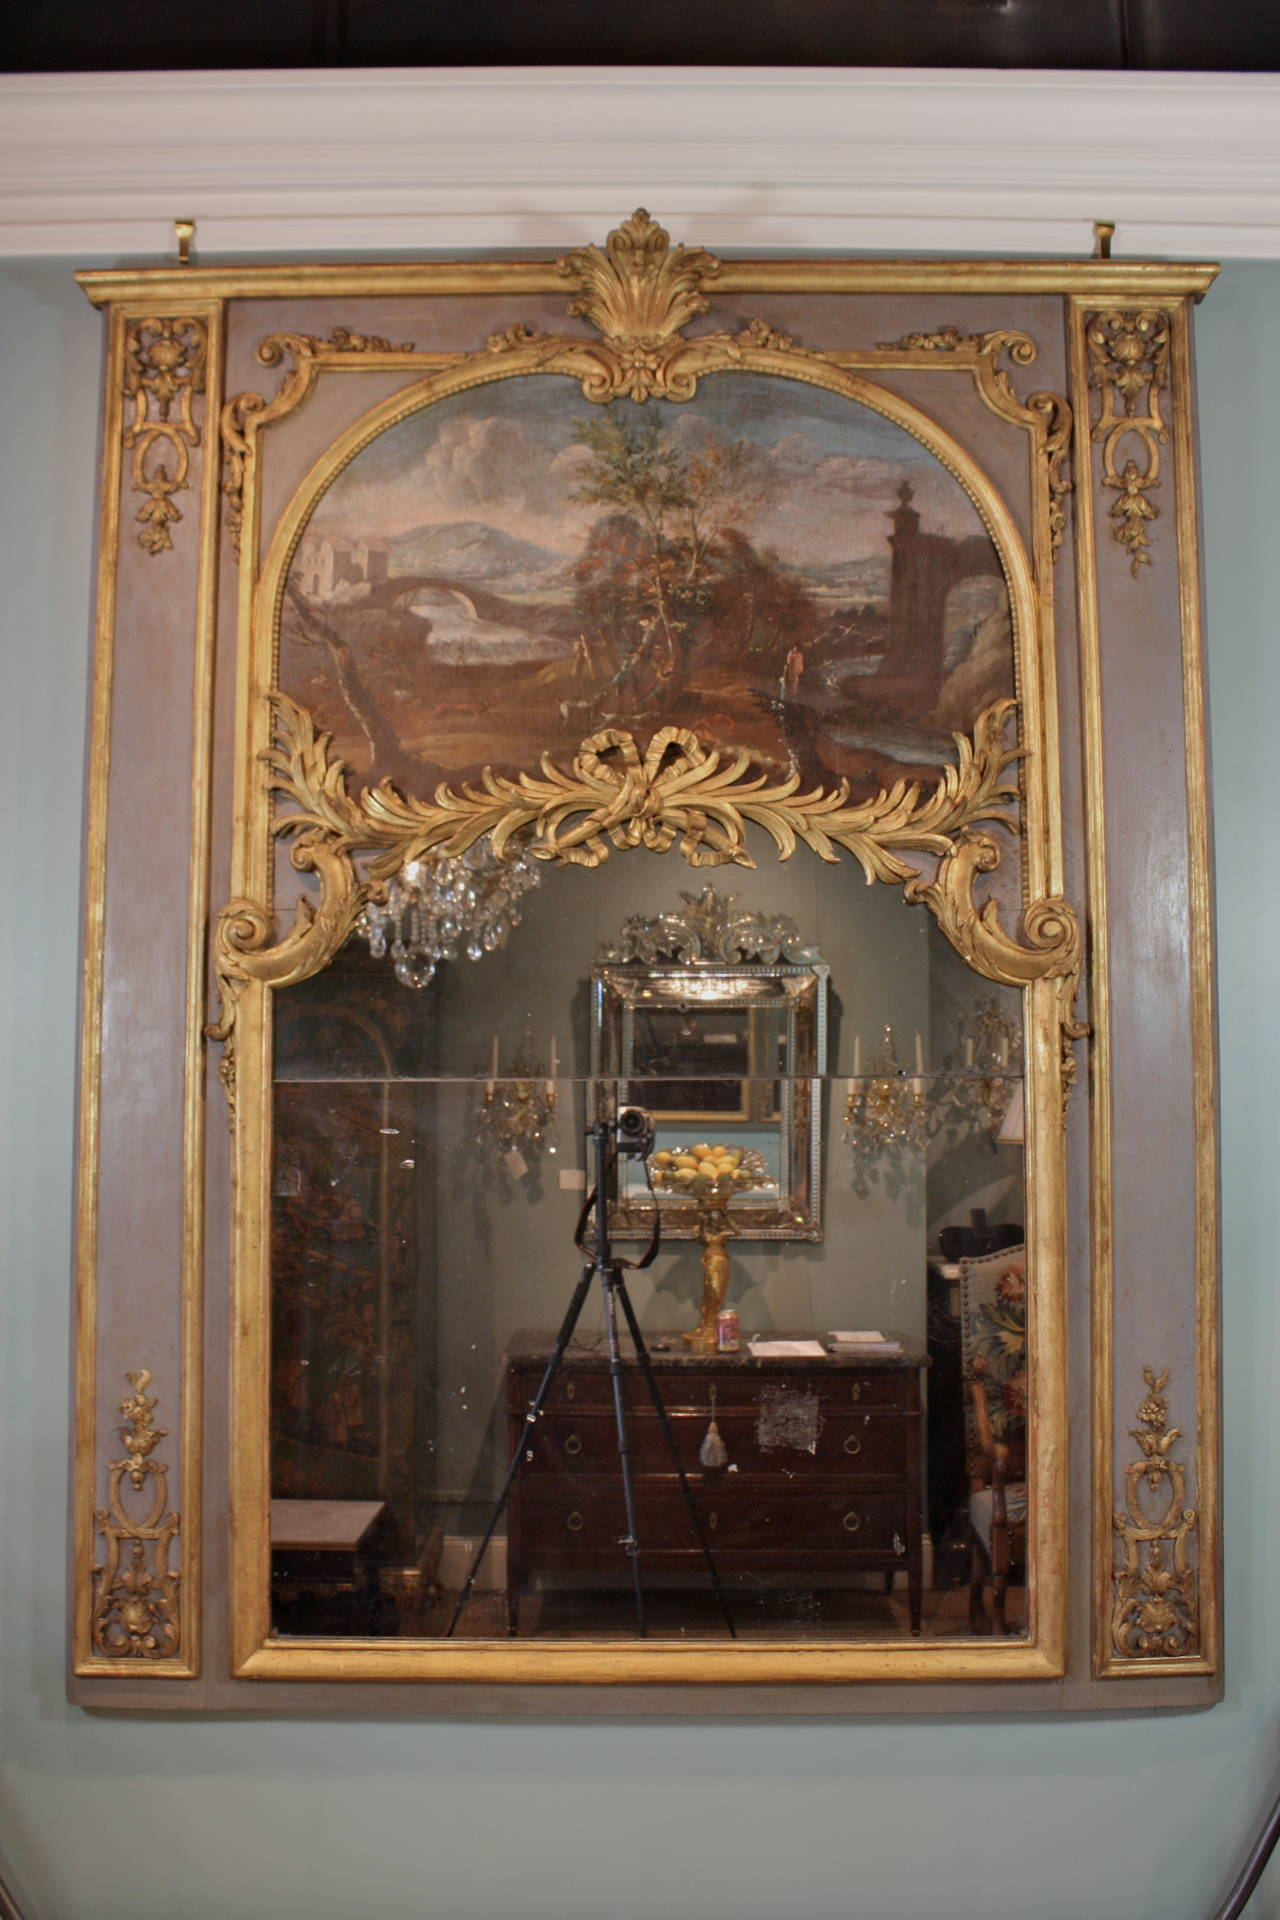 A large and impressive French, 18th century Louis XVI period carved and giltwood trumeau mirror with antique mercury glass panels. A period oil on canvas painting of an expansive landscape with hunters is enclosed in a carved giltwood arched